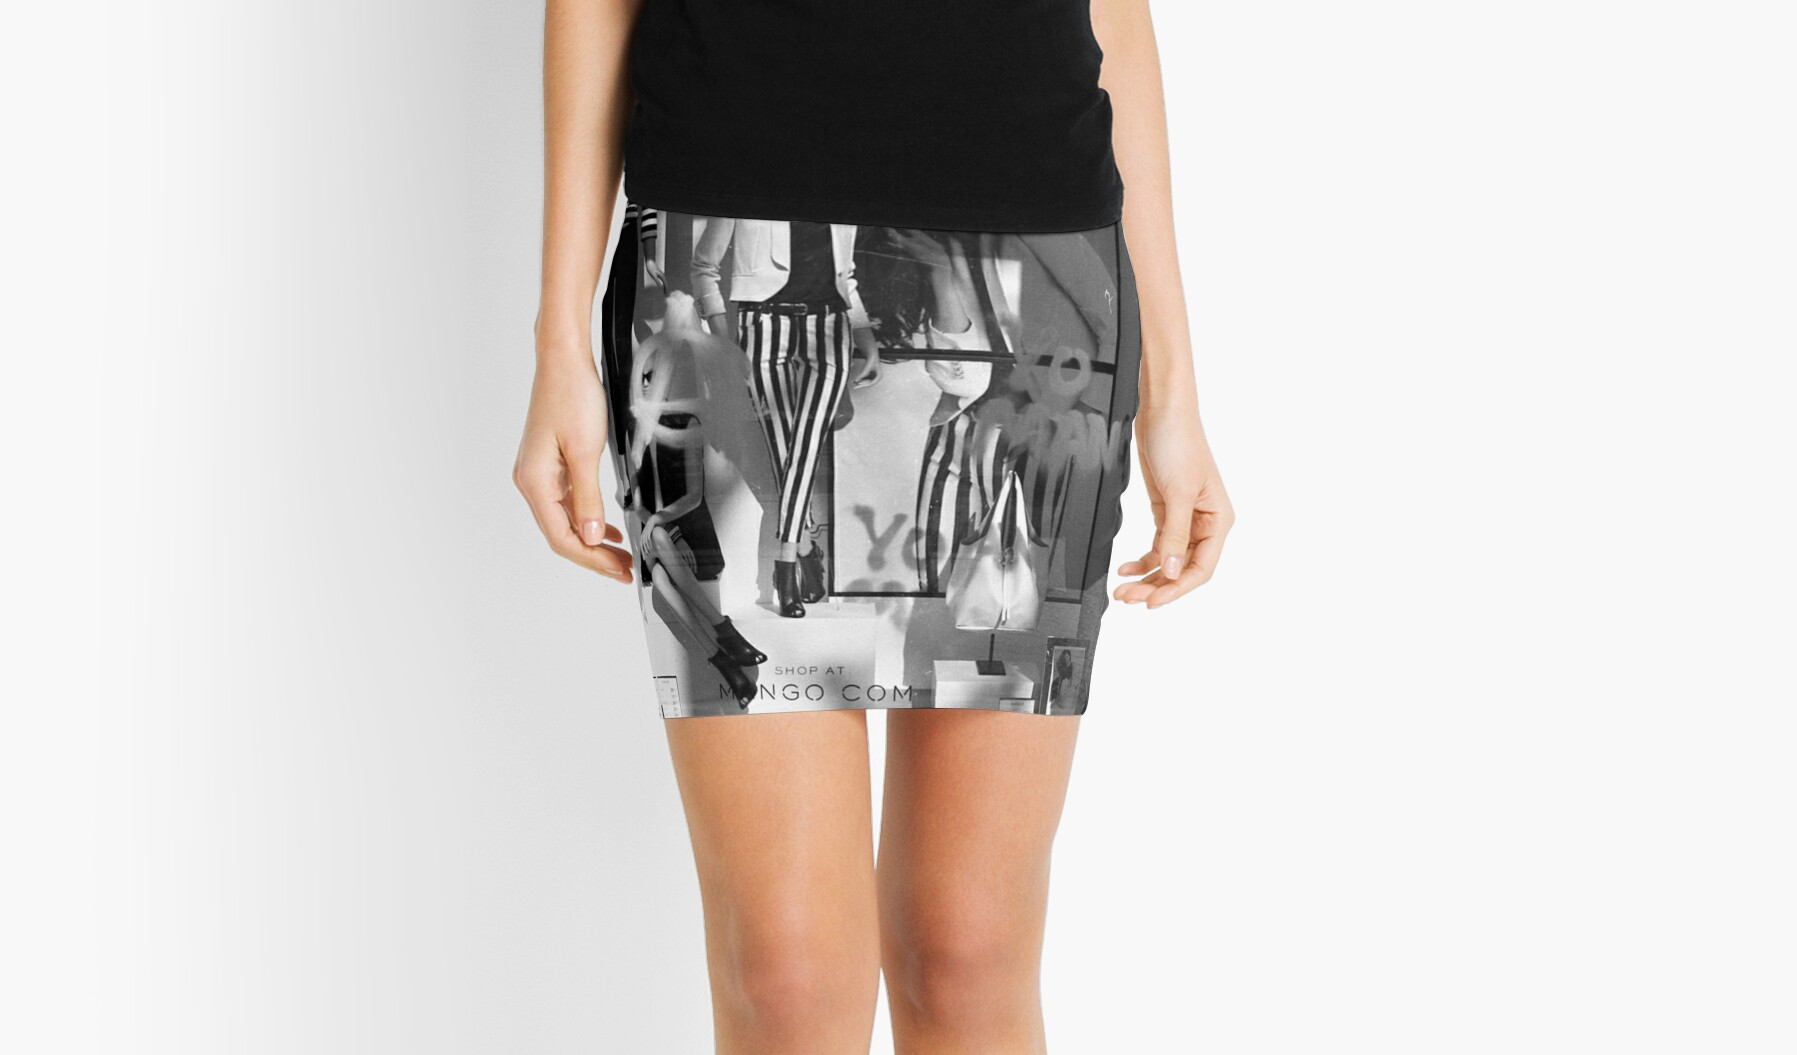 Quot Protest Anarchy Womens Quot Mini Skirts By Jvintage Redbubble